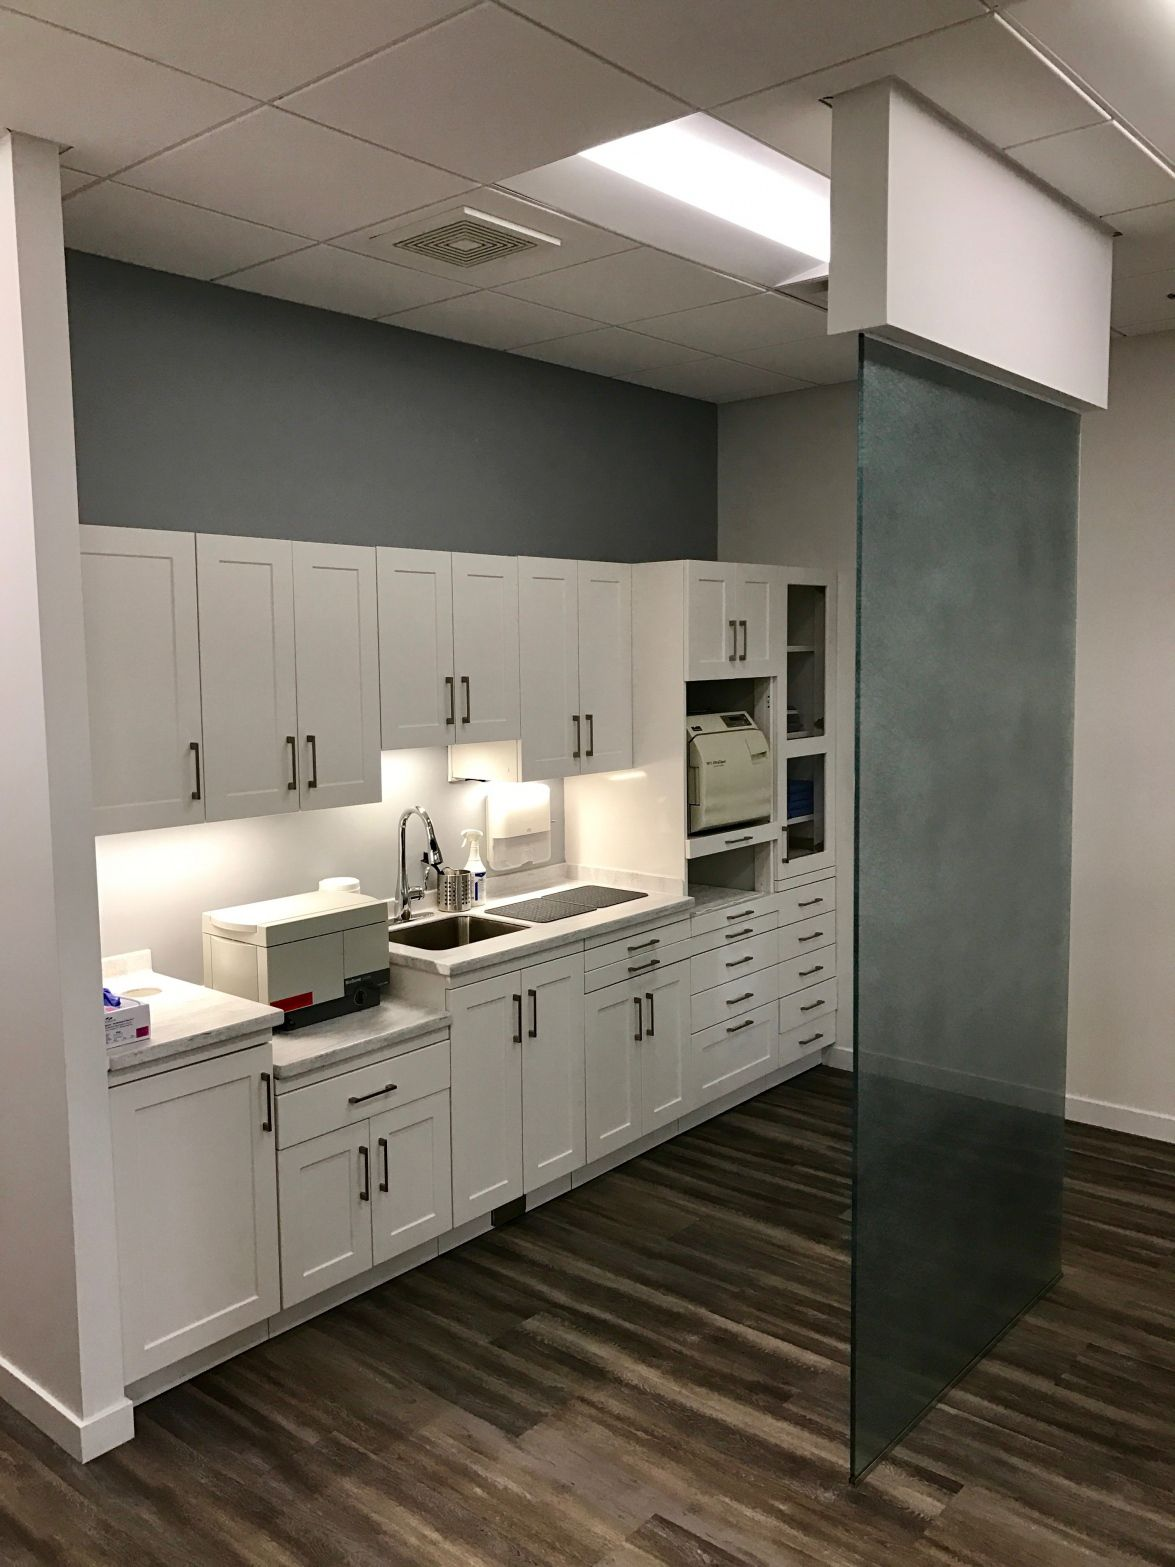 99 Dental Office Cabinets Expensive Home Office Furniture Check